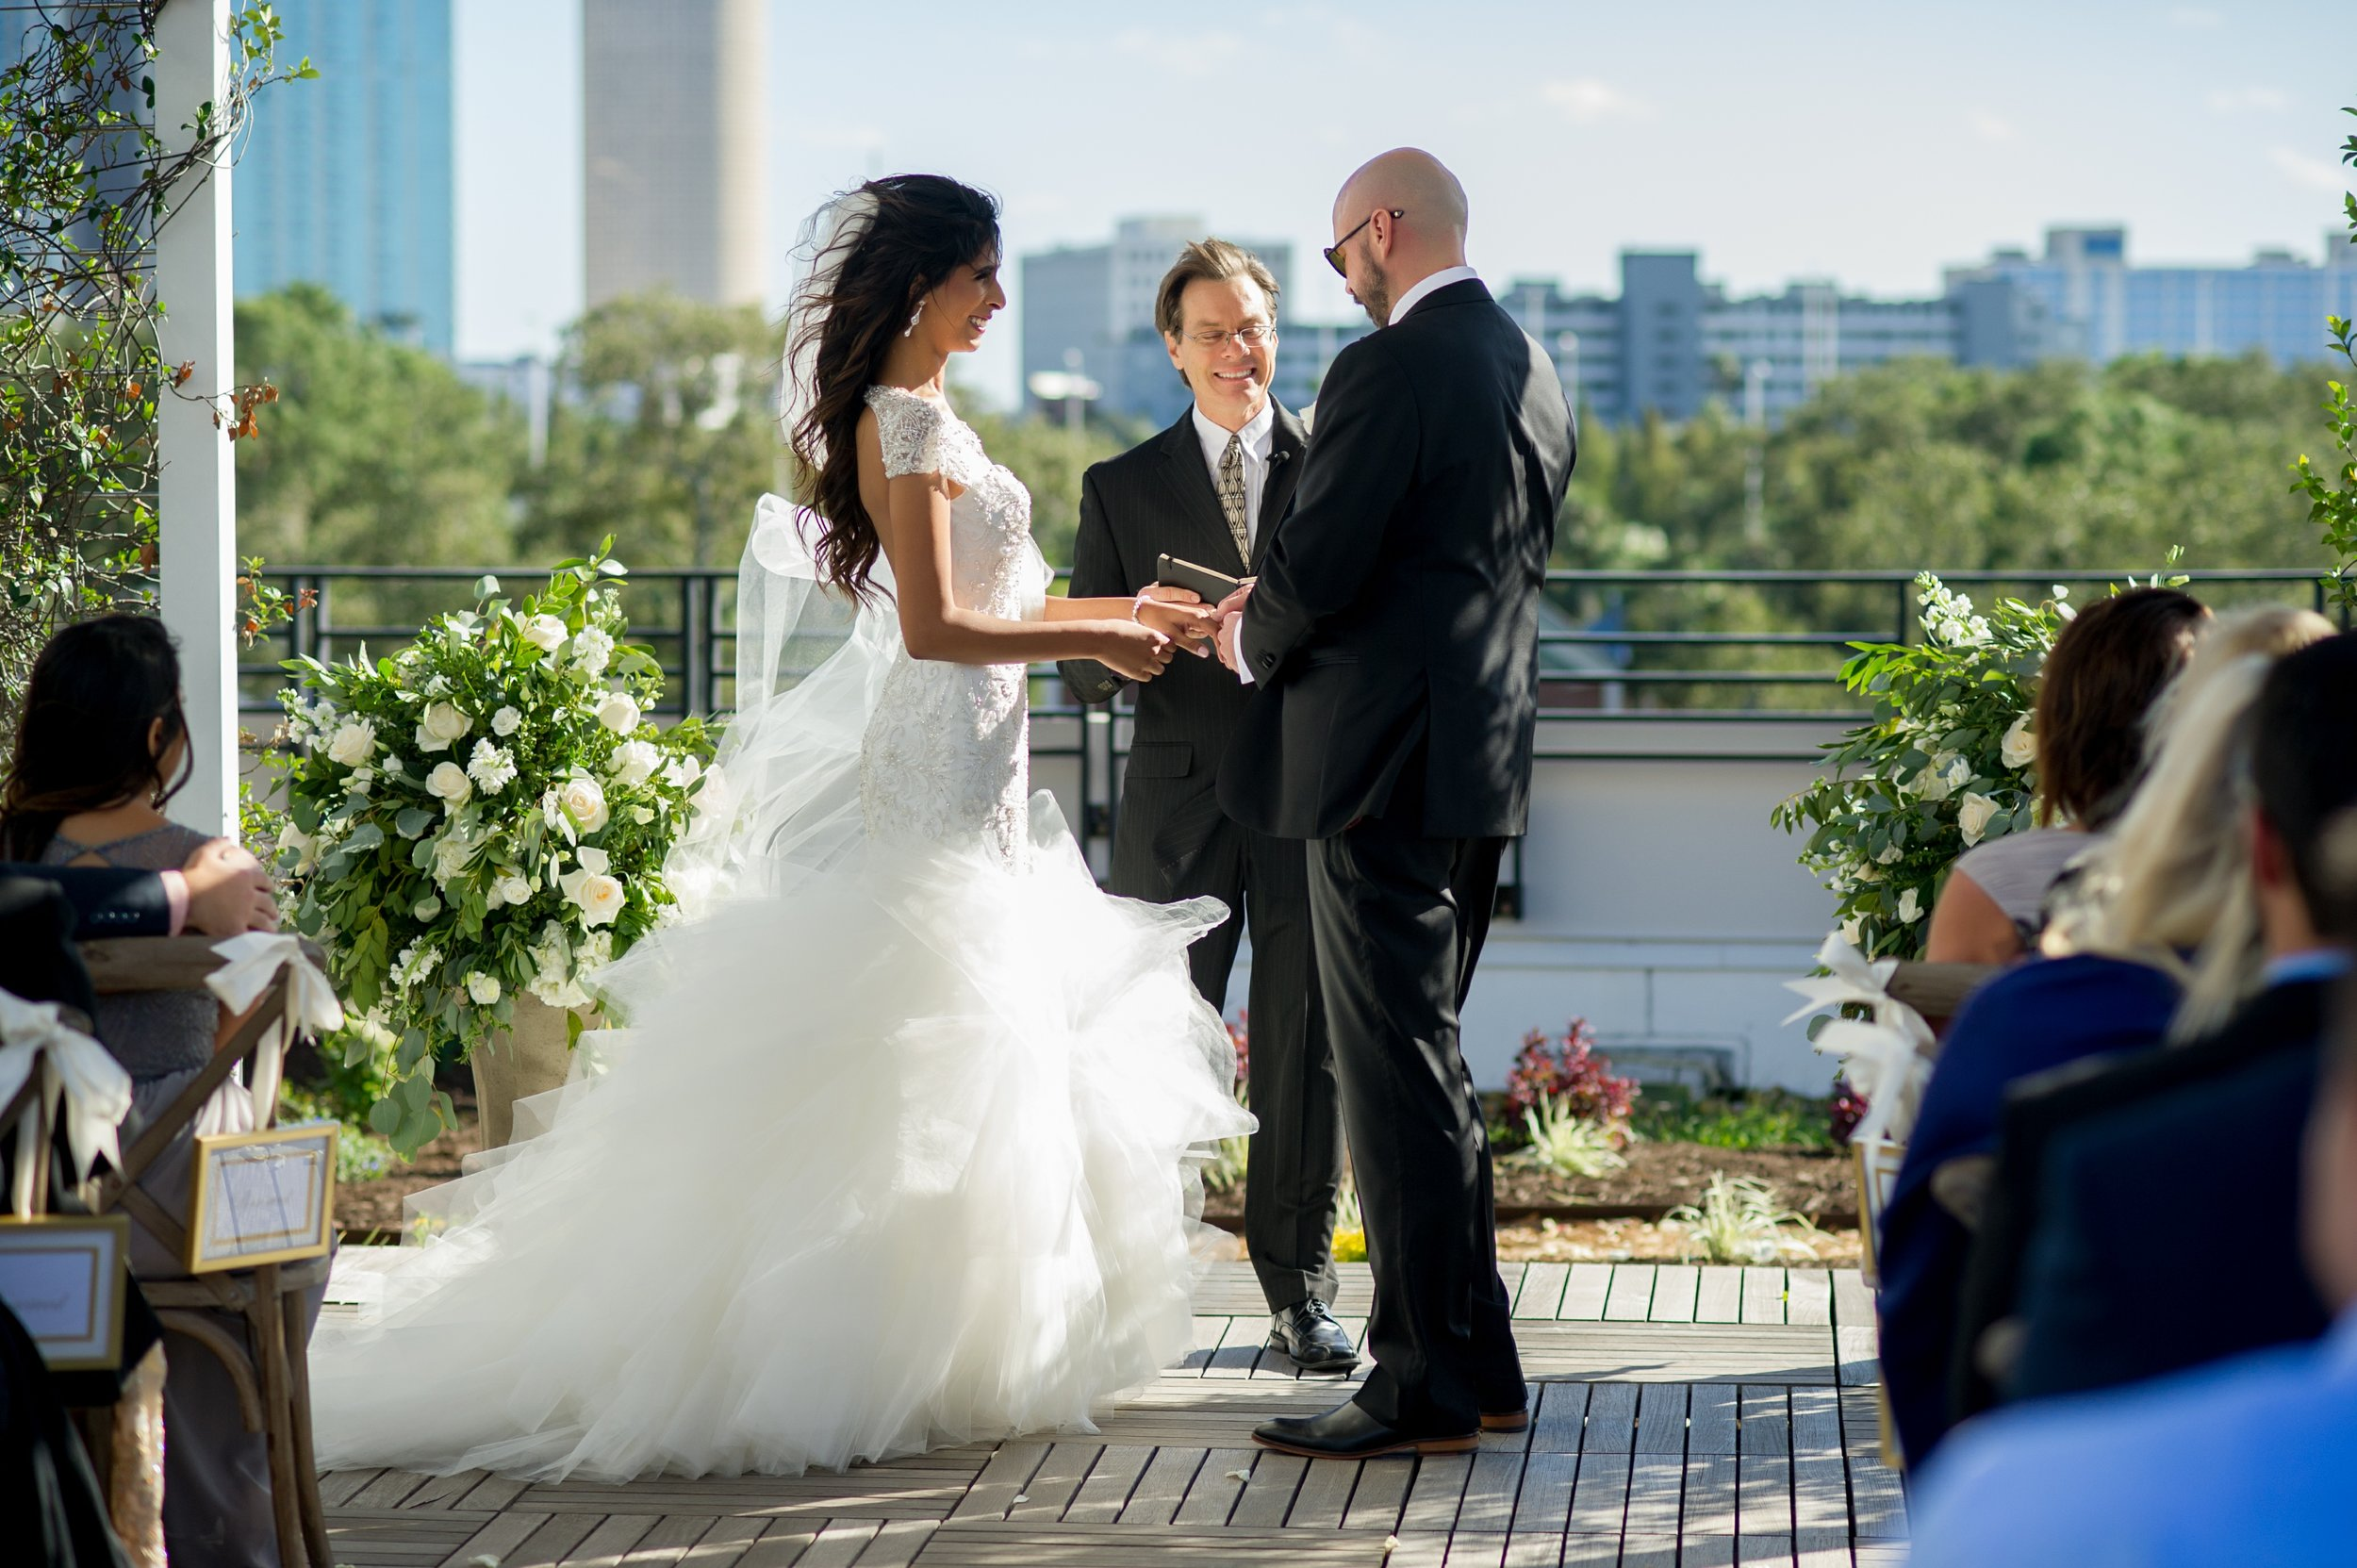 The couple exchanged vows overlooking the Hillsborough River and city skyline.